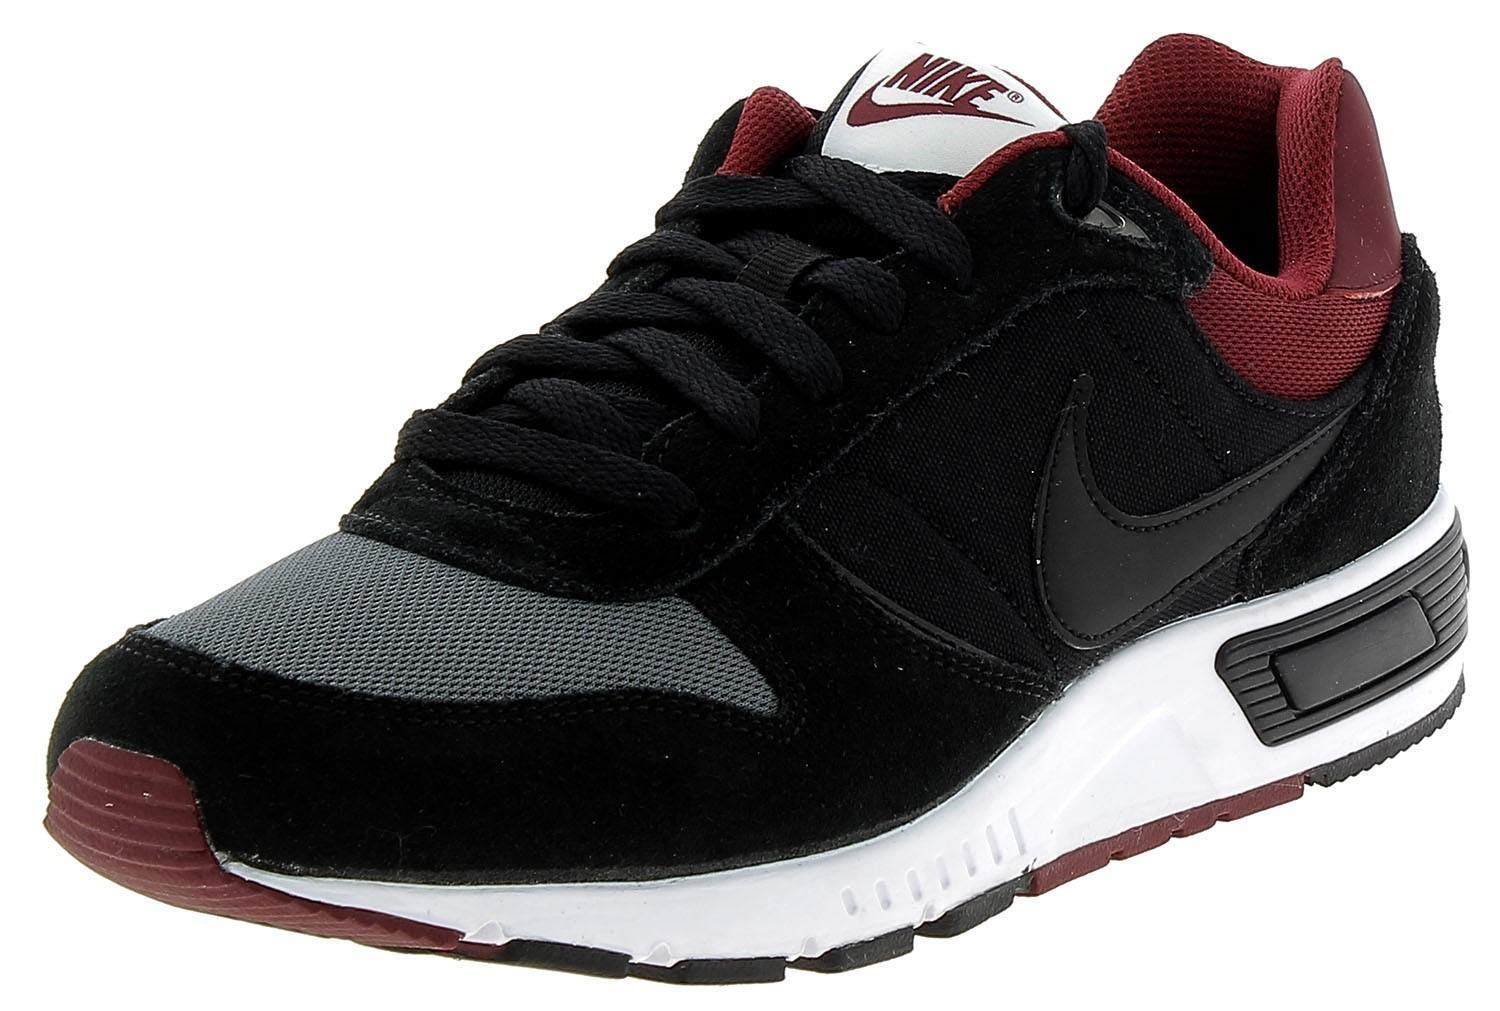 the best attitude 0297b a143b NIKE Nightgazer, Scarpe da Fitness Uomo